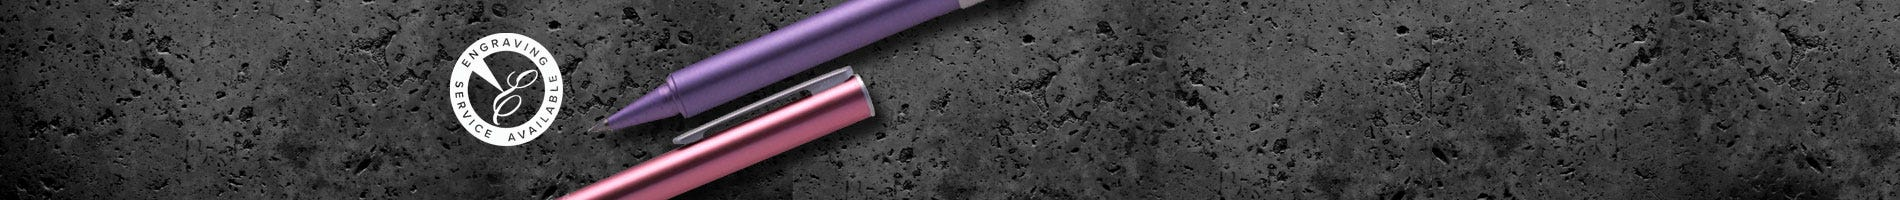 OHTO Tasche pink and purple pens